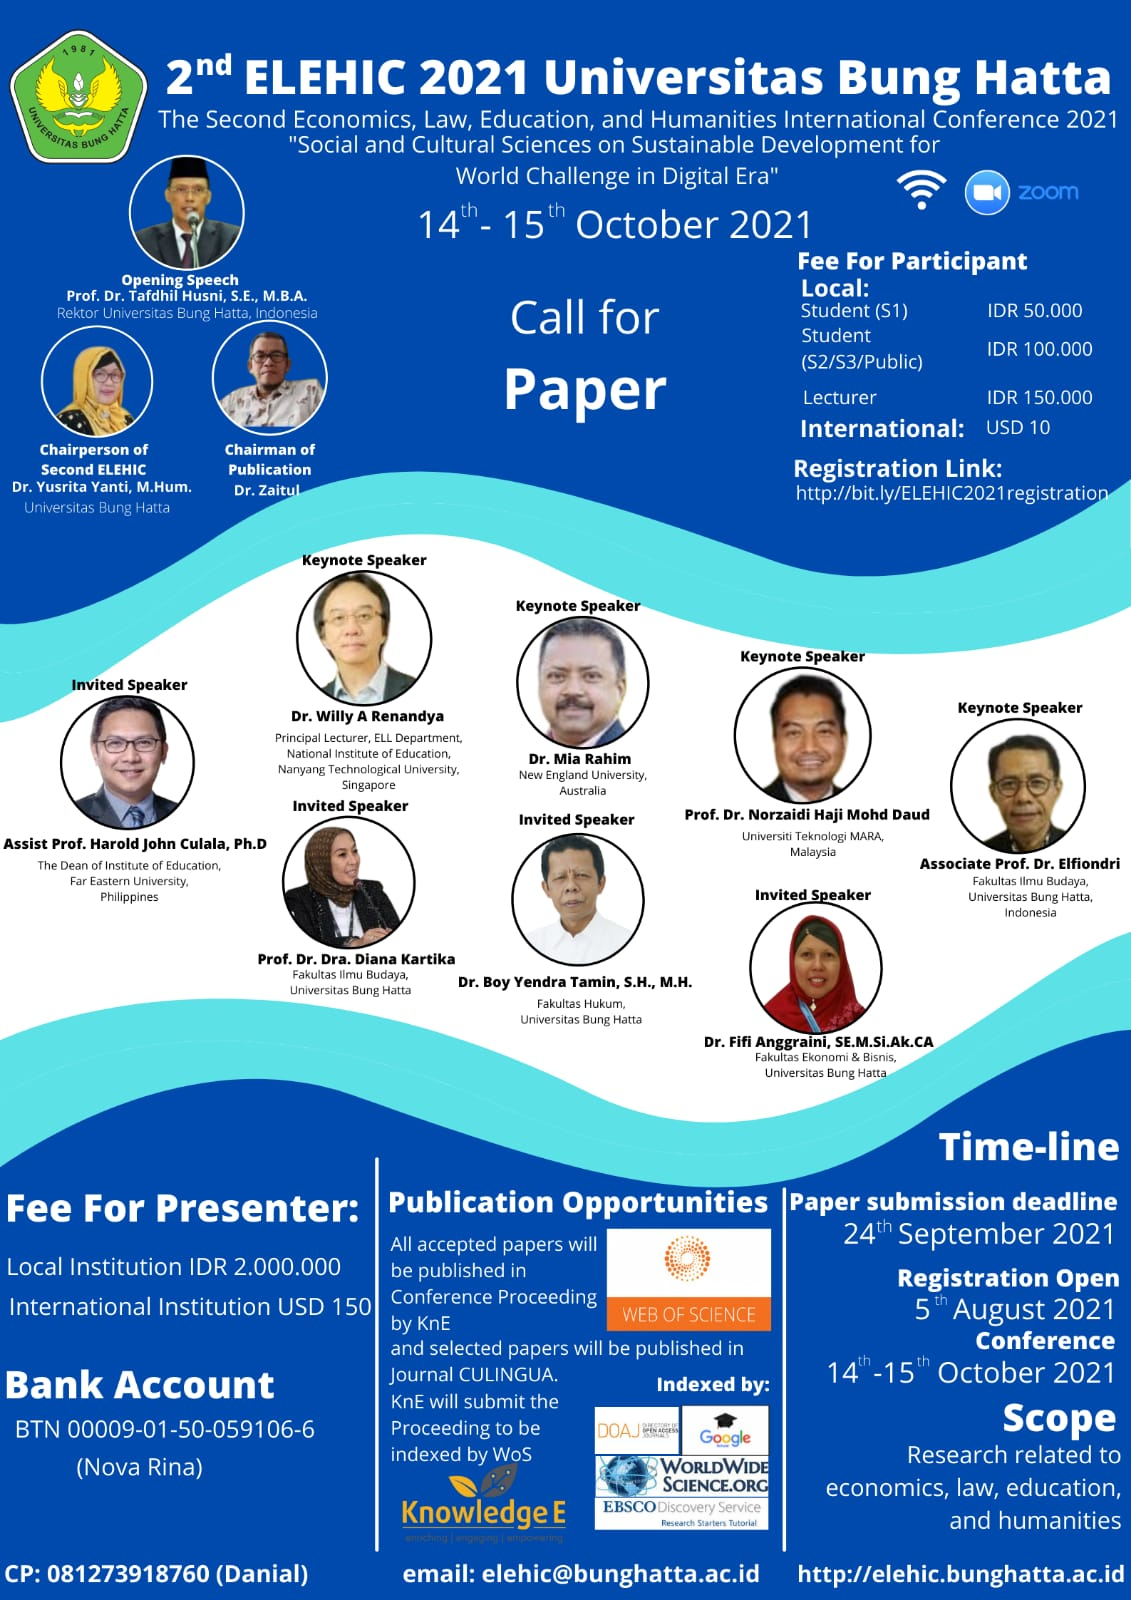 The Economics, Law, Education and Humanities International Conference (ELEHIC) 2021